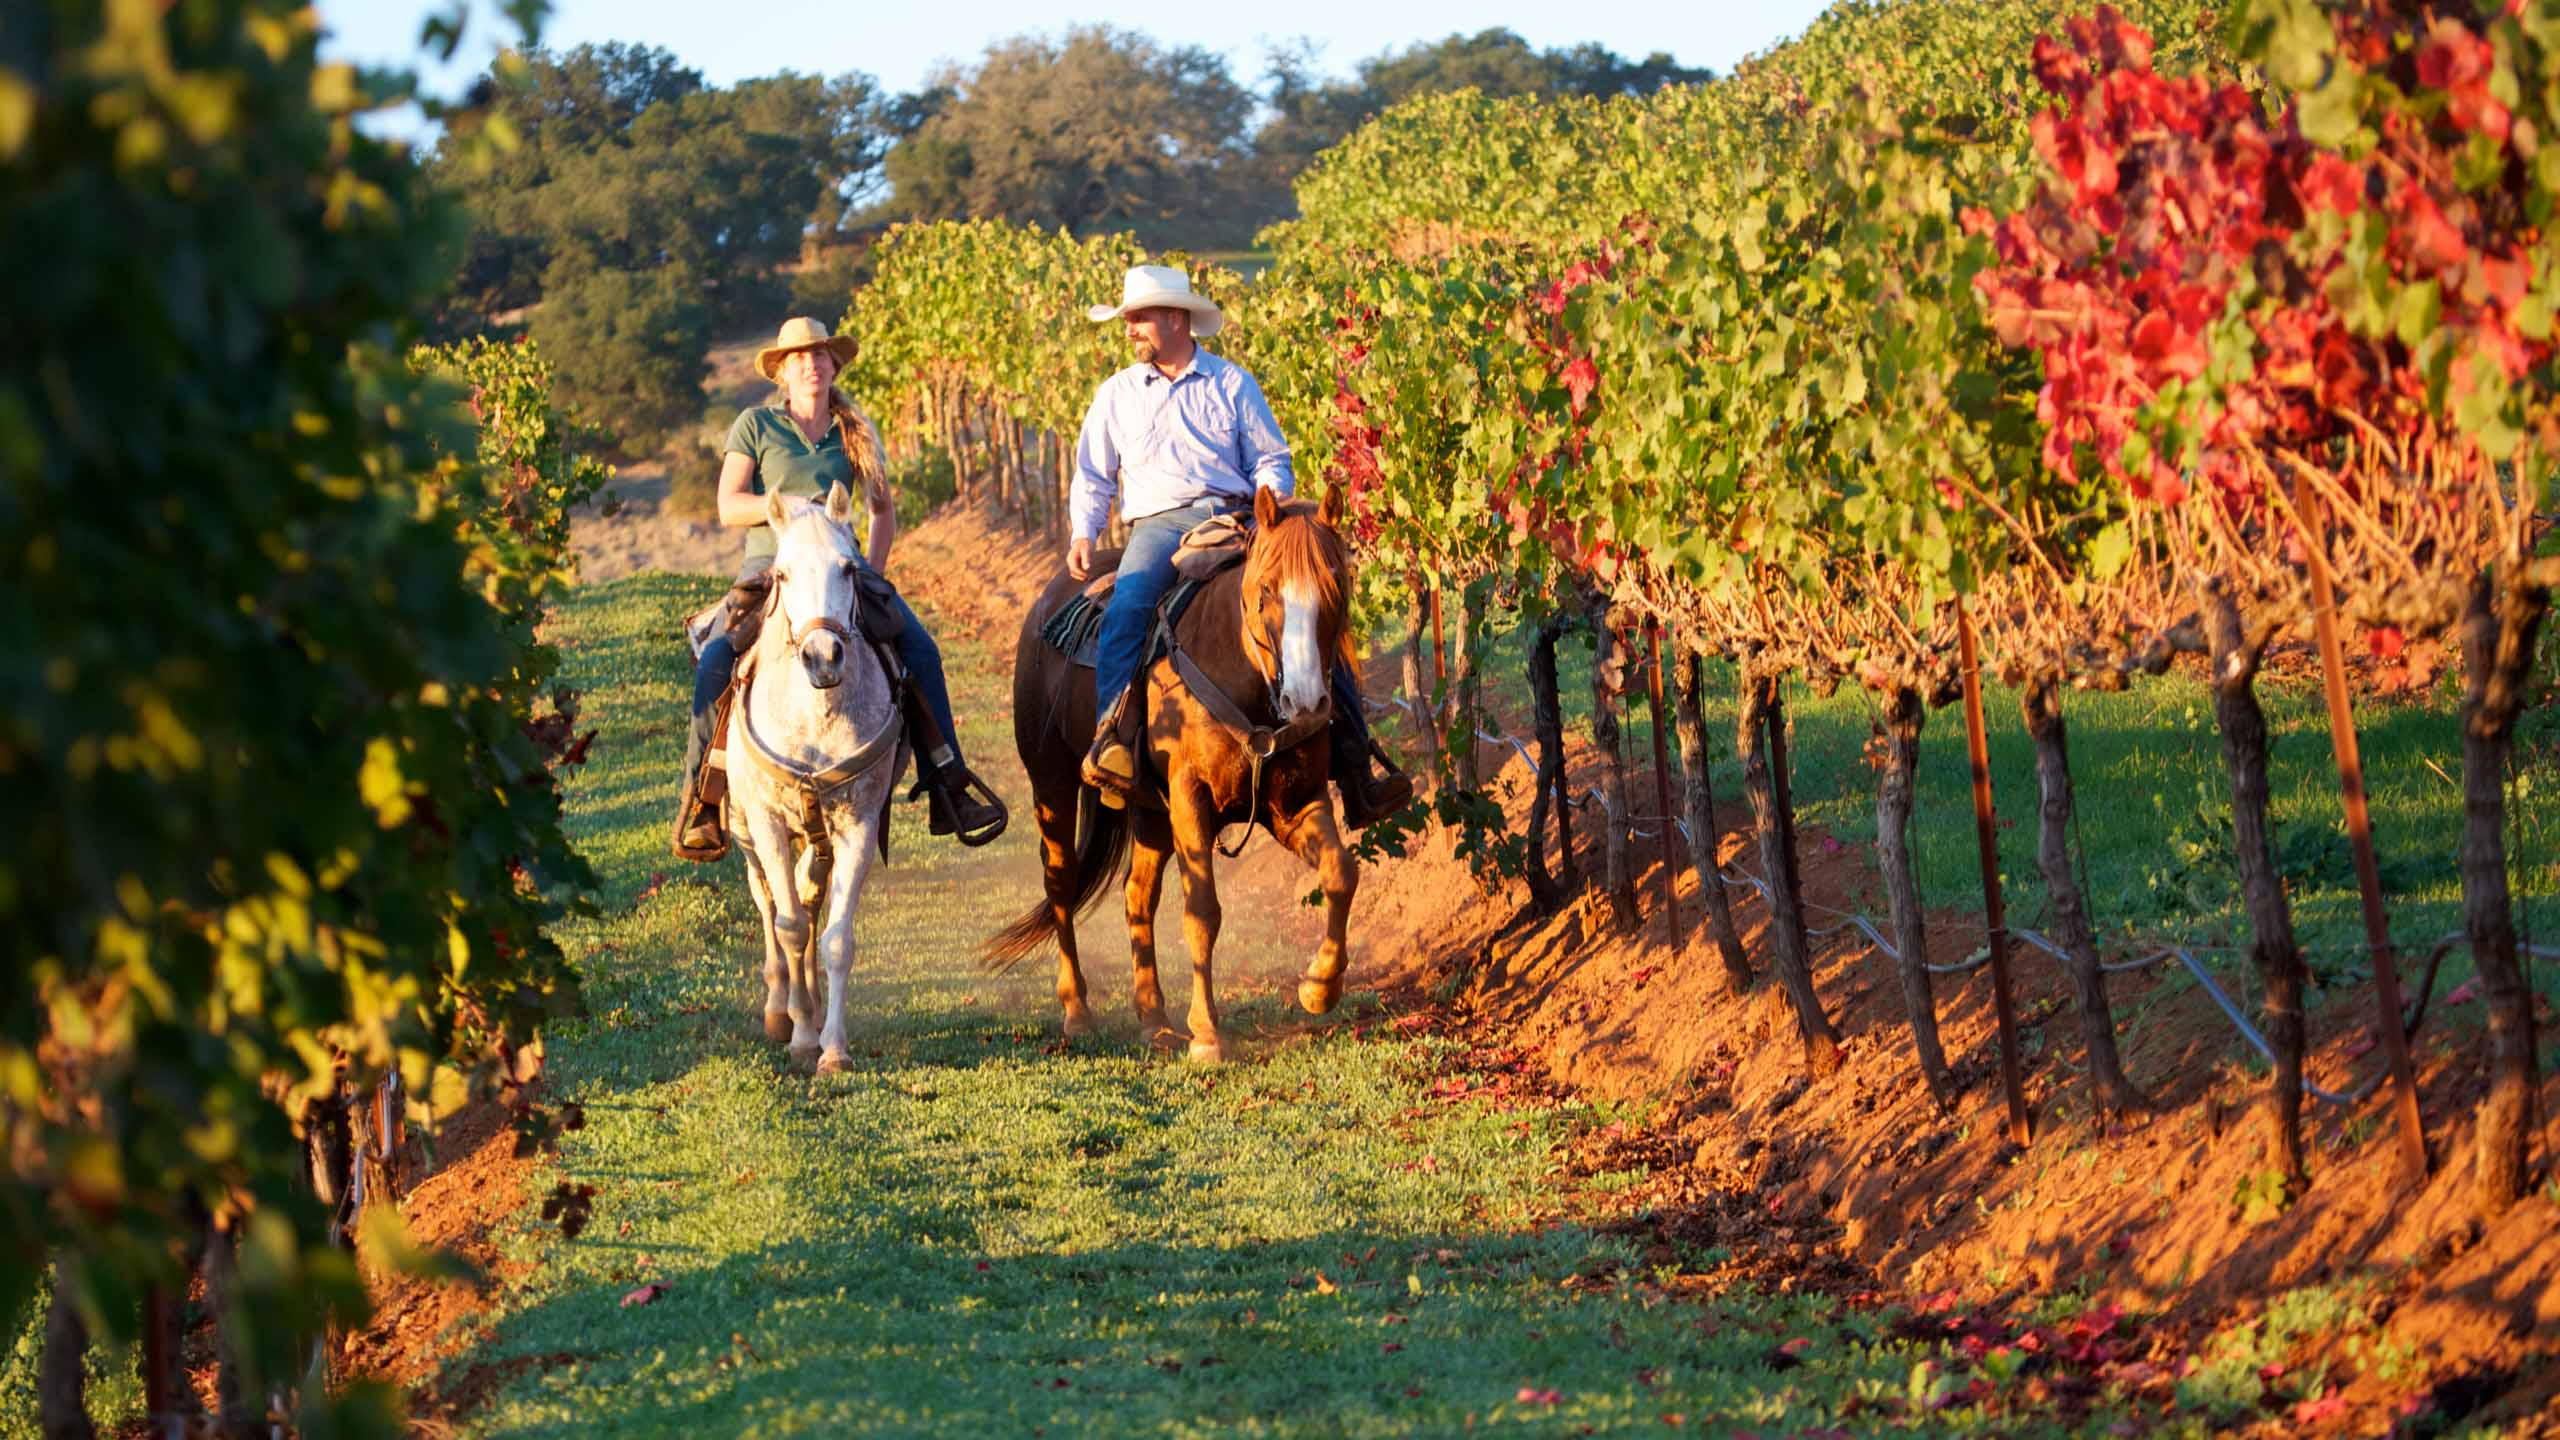 Horse riding in Napa Valley's vineyards - Wayne Pollock Exclusive Luxury